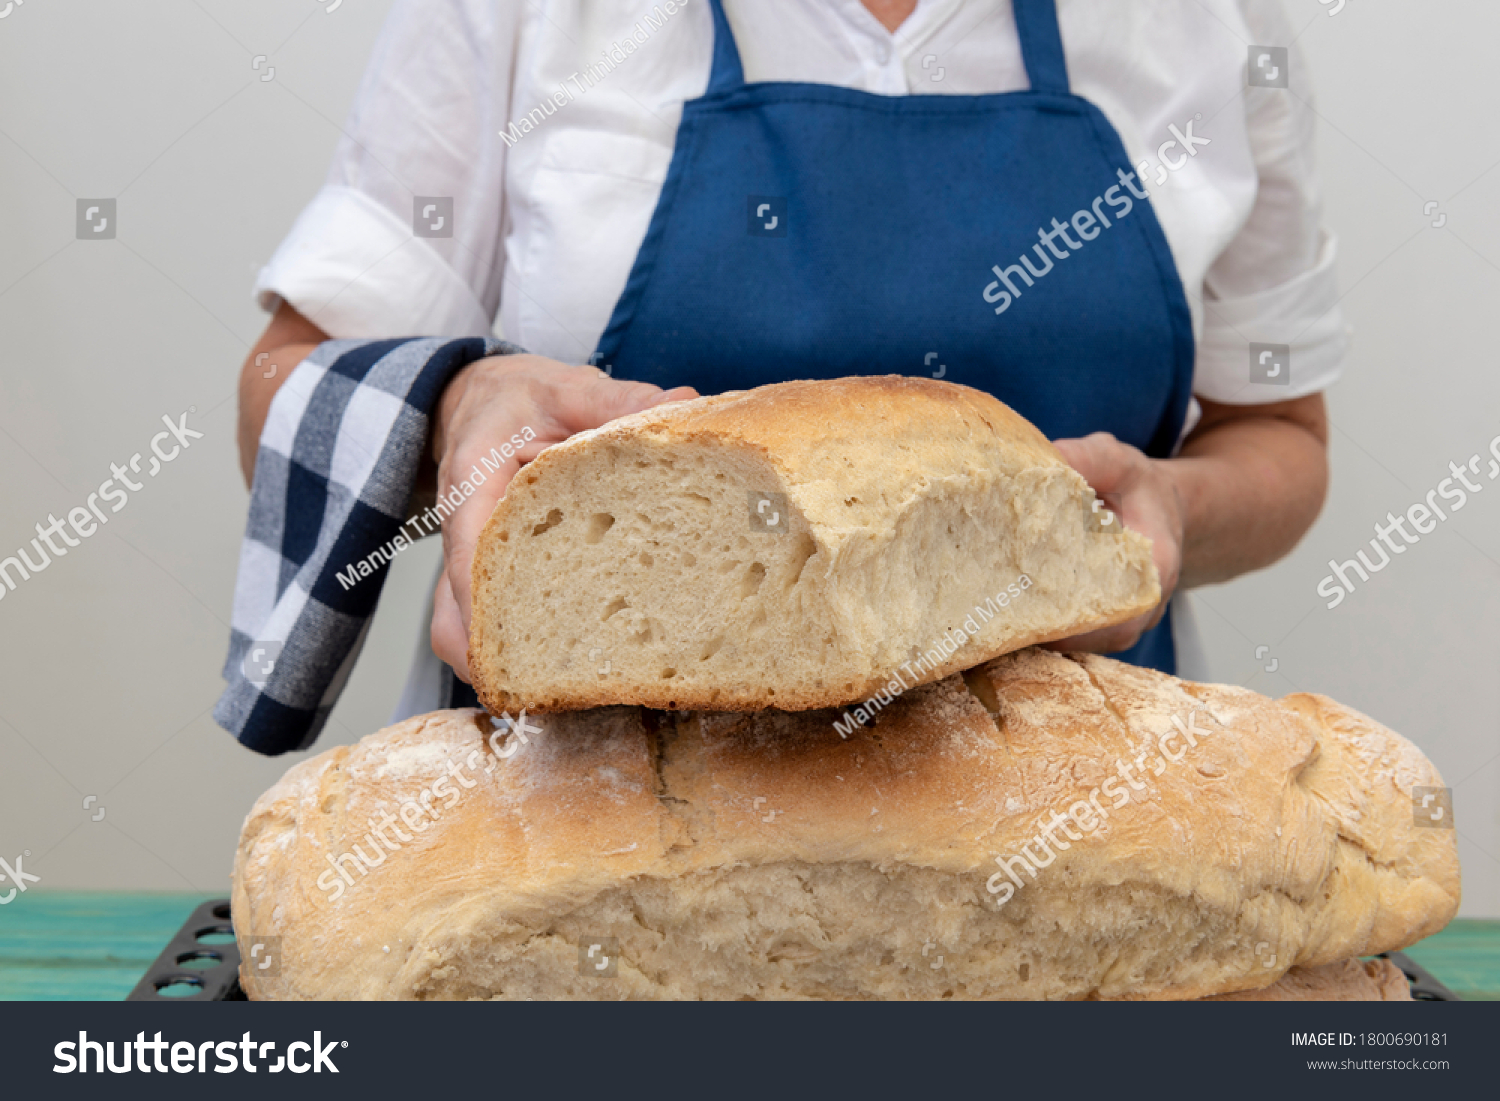 Female baker shows freshly baked bread